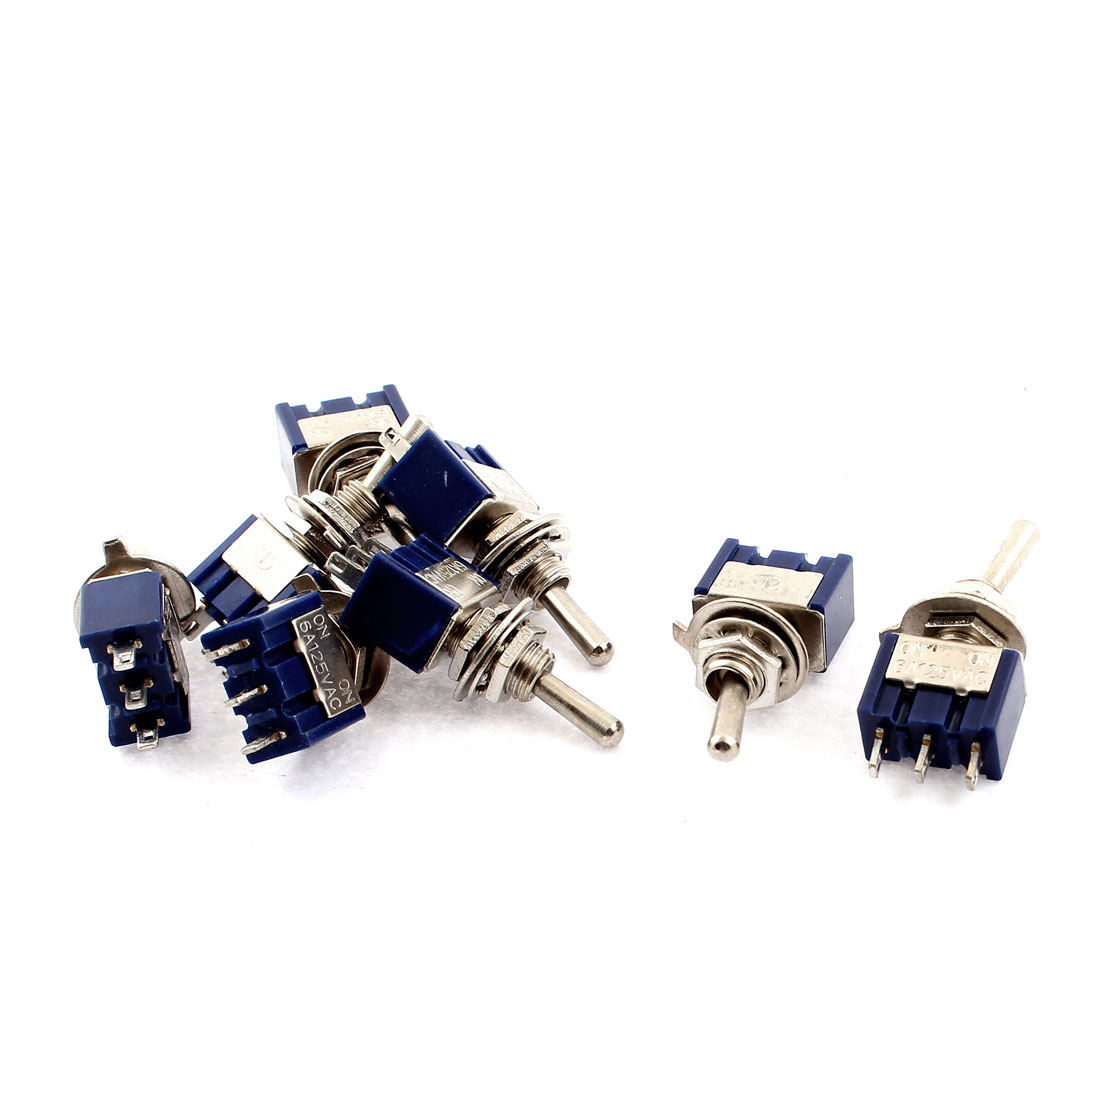 AC 125V 6A SPDT 2 Positions ON/ON 6mm Dia Thread 3 Terminals Toggle Switch 8pcs